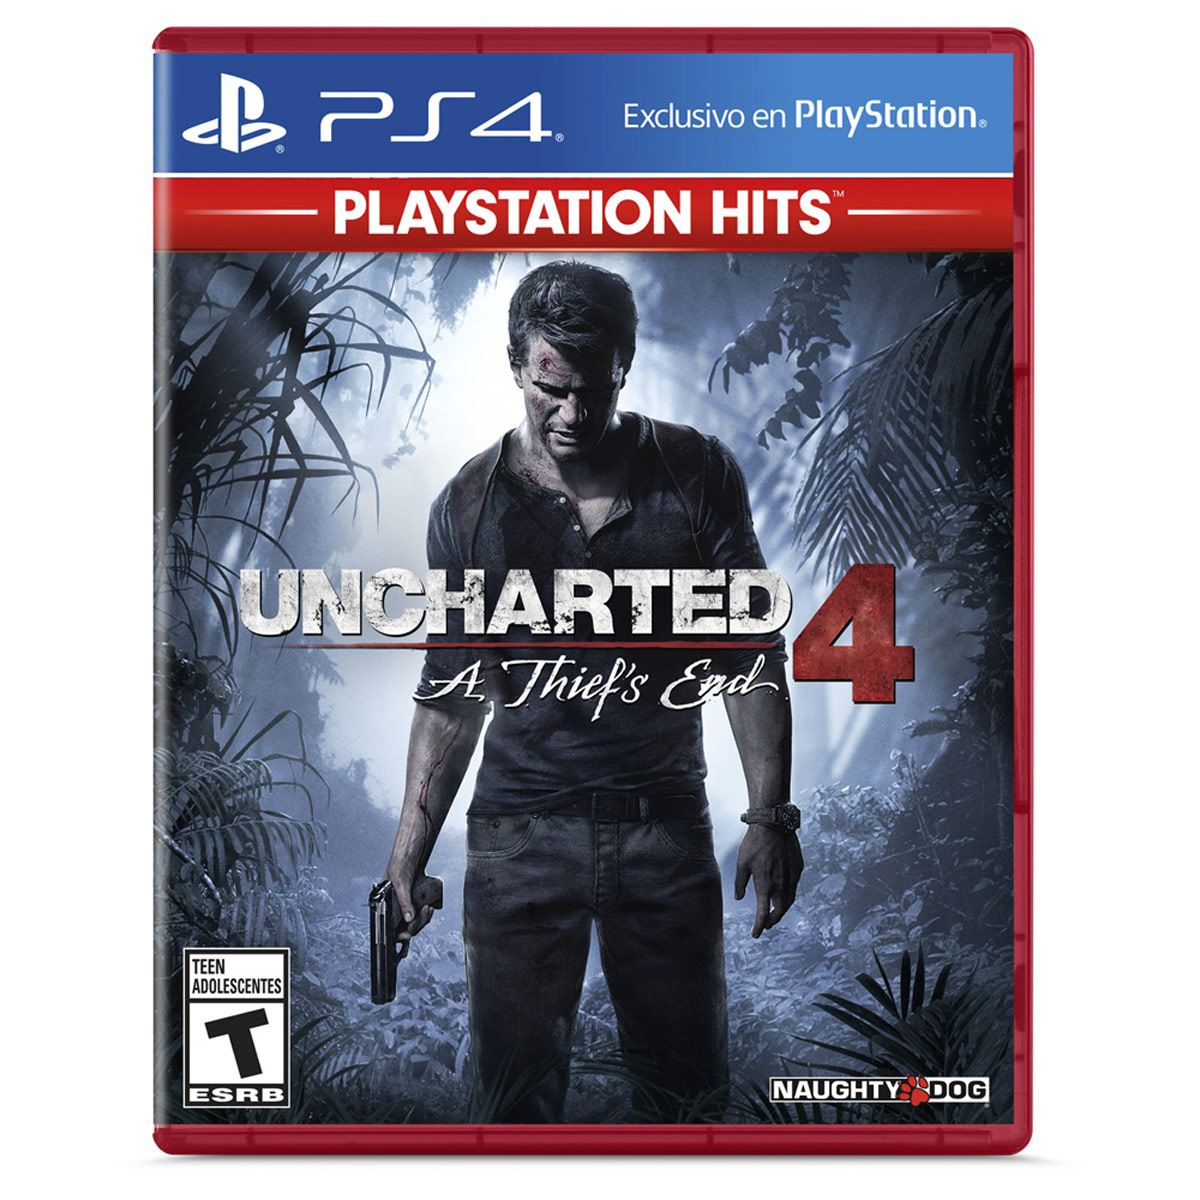 PS4 Hits UC4 A Thief S End